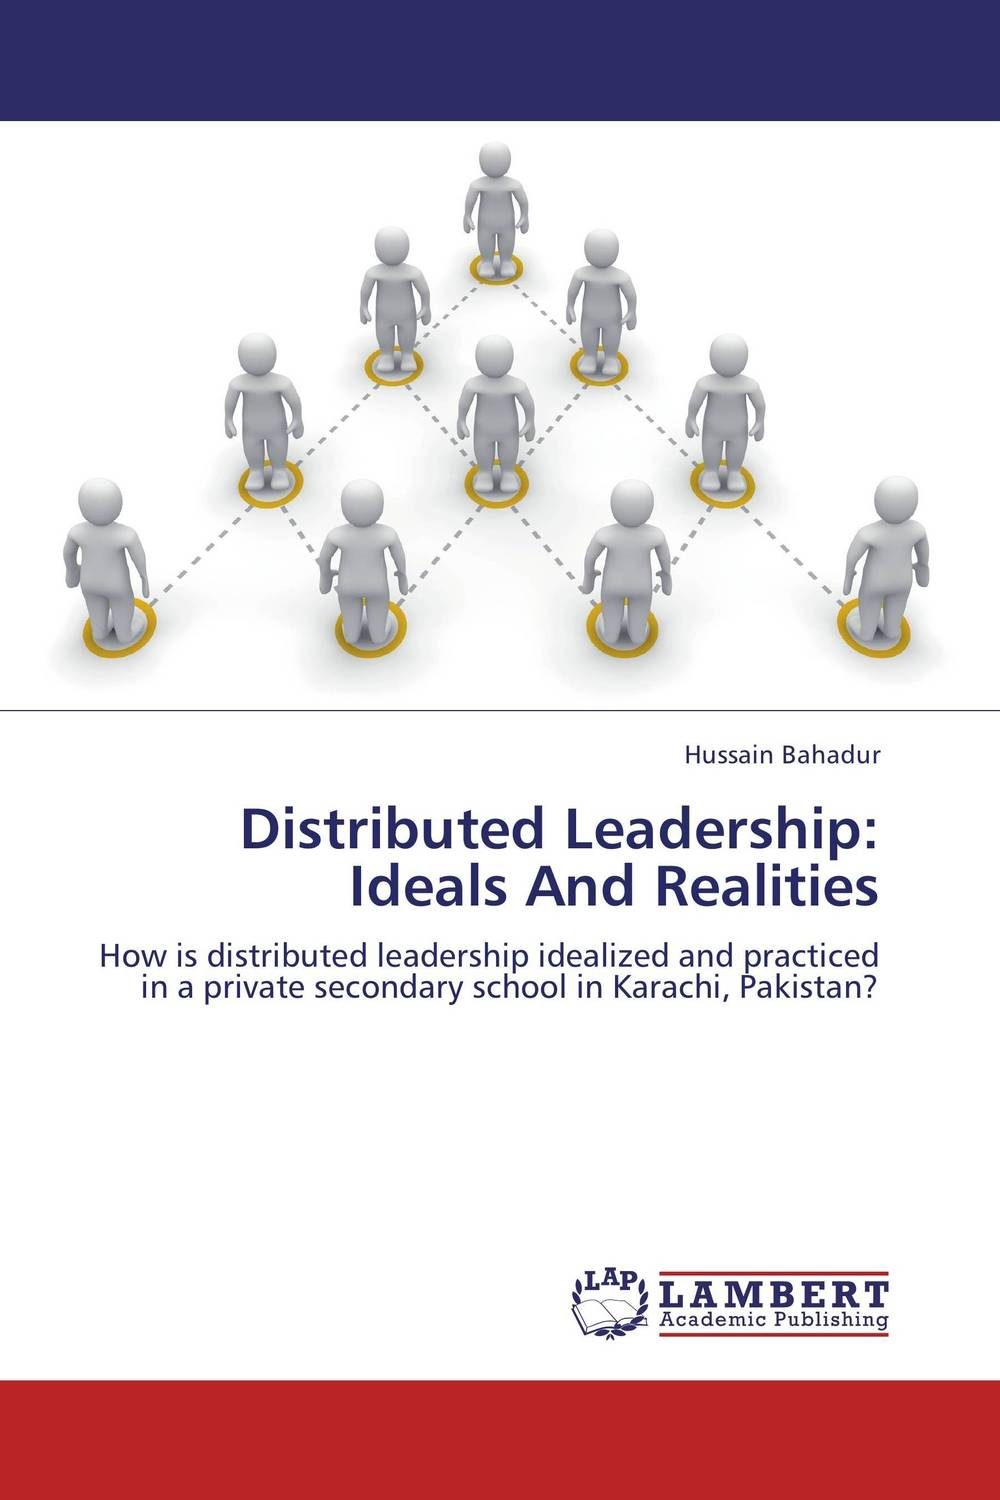 Distributed Leadership: Ideals And Realities role of school leadership in promoting moral integrity among students